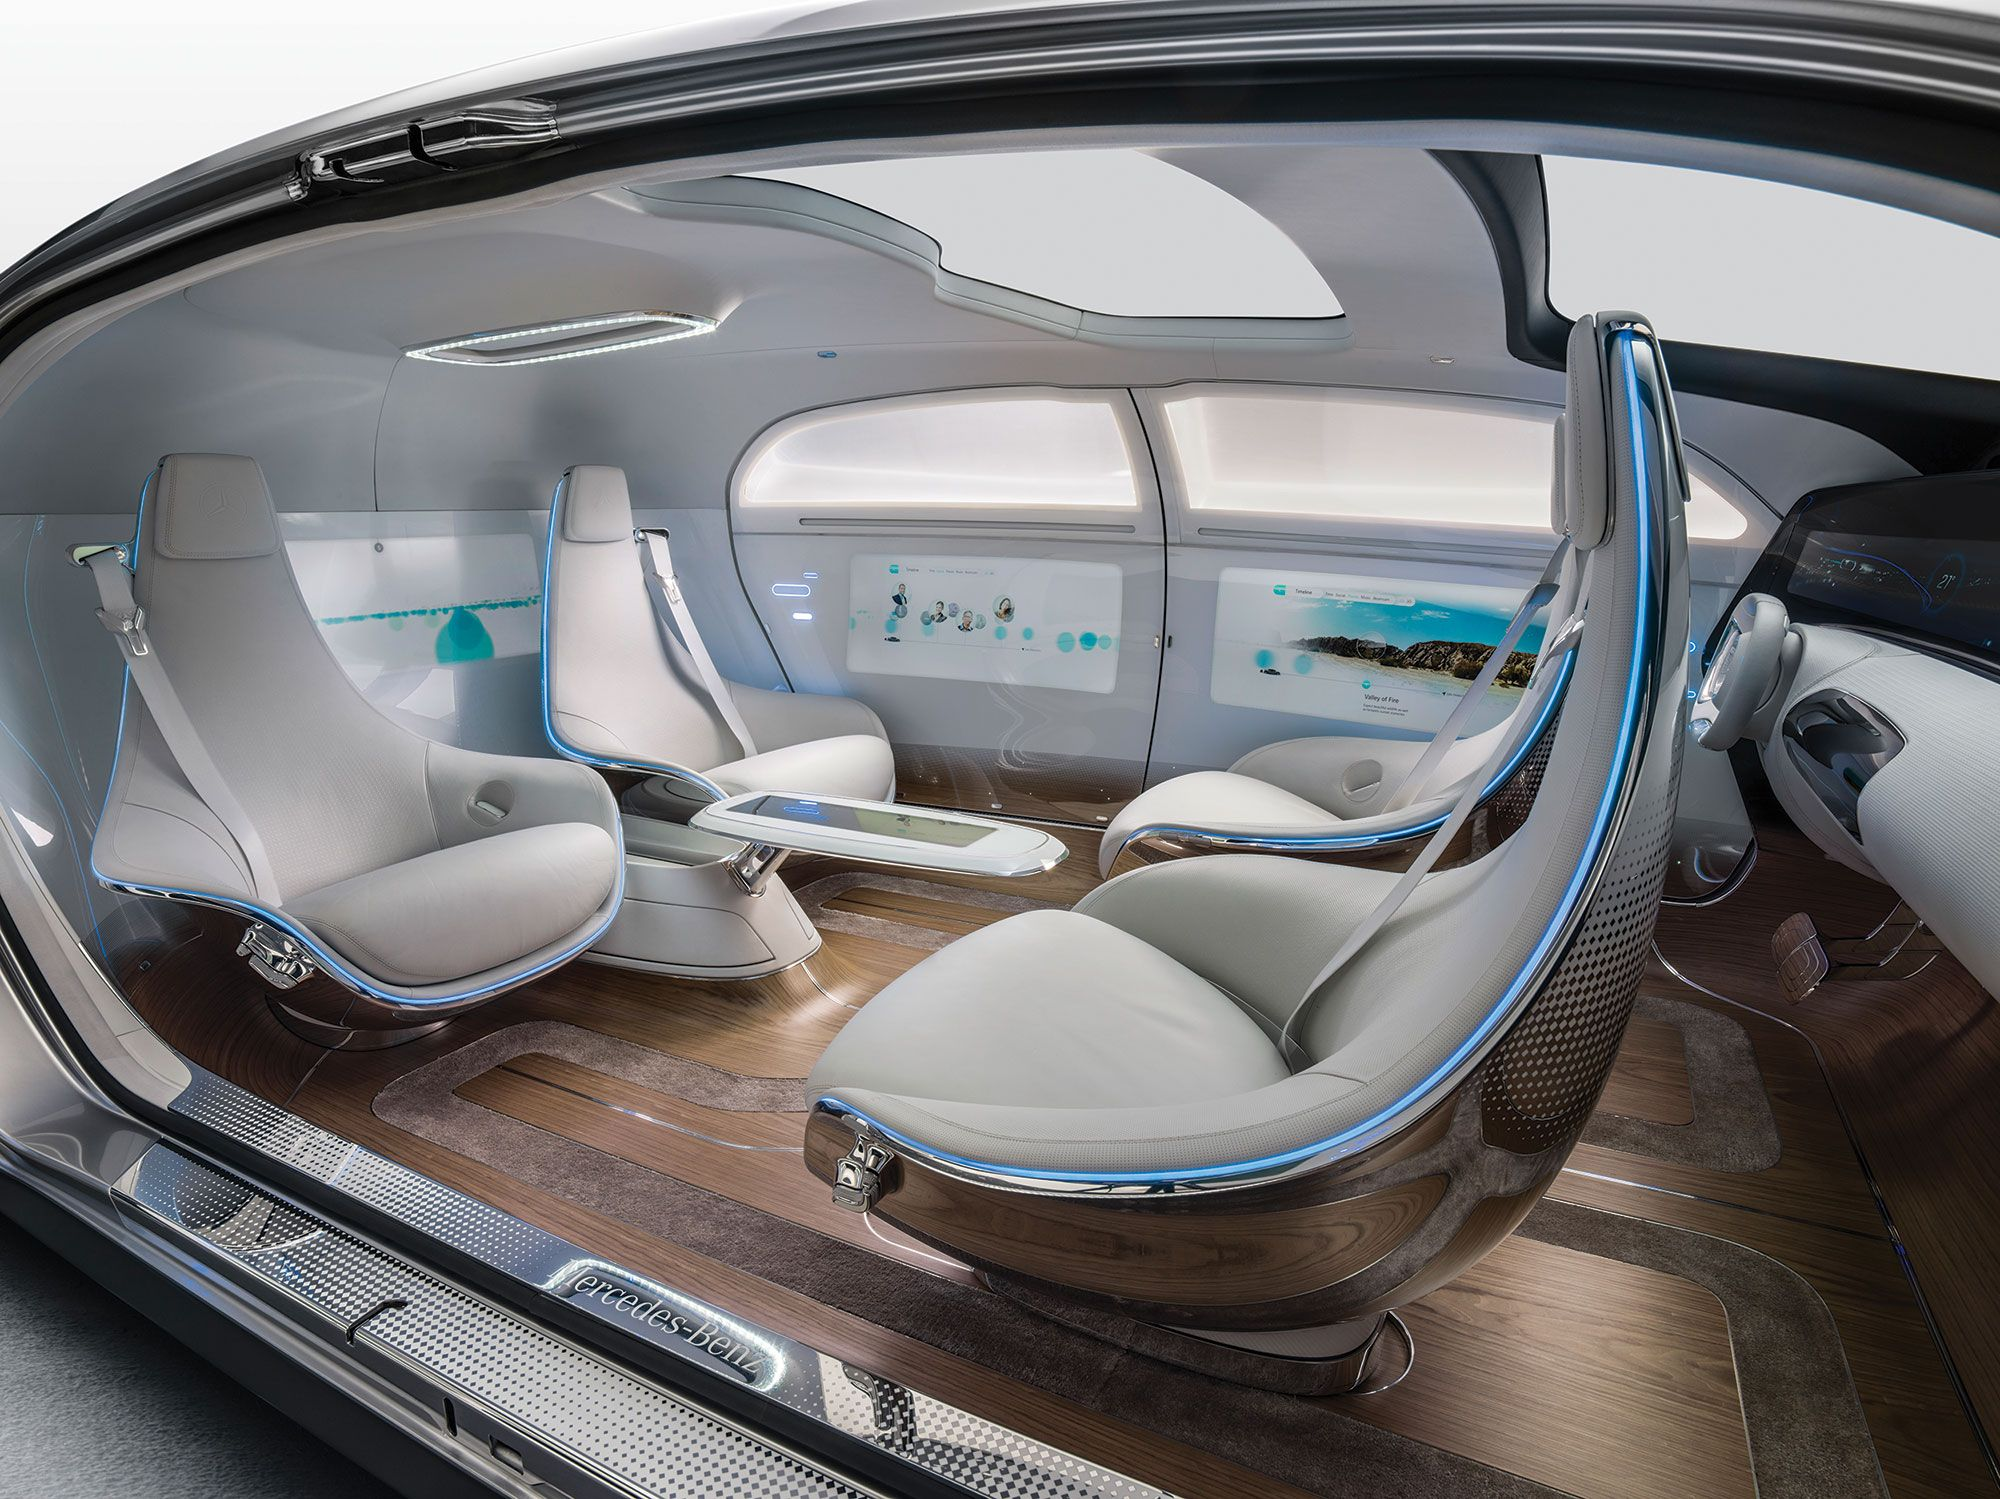 The Unexpected Source Of That Luxury Feel In Car Interiors